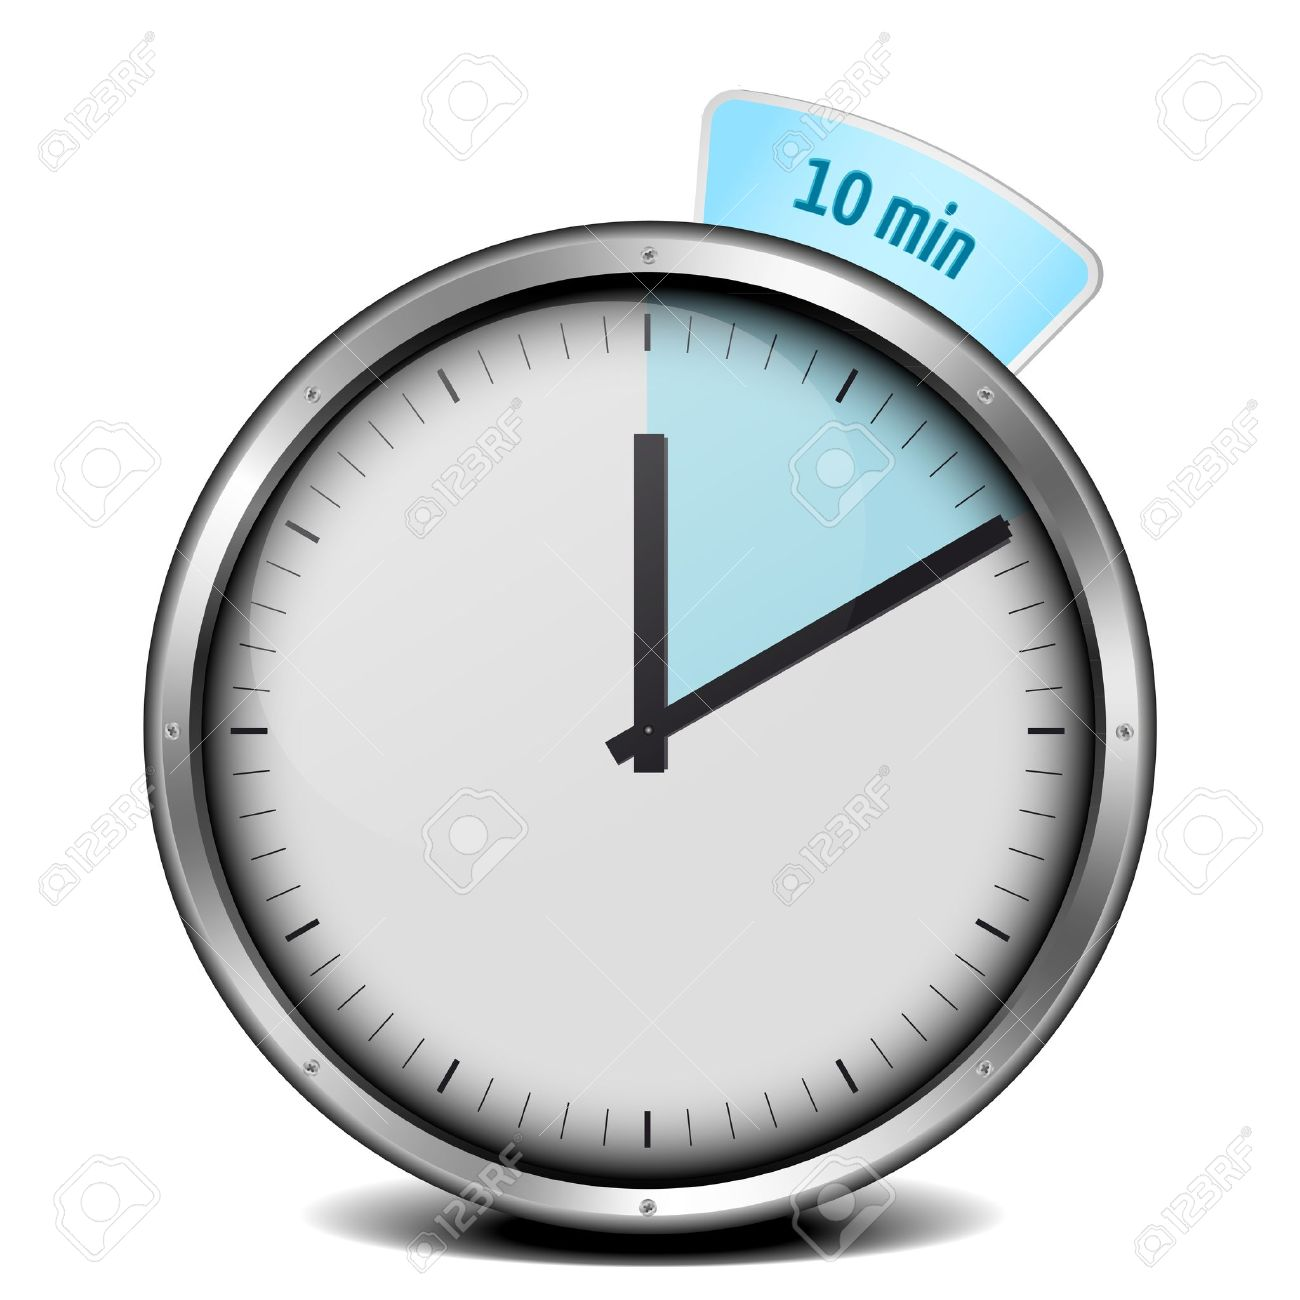 Illustration Of A Metal Framed 10min Timer Stock Photo, Picture ...